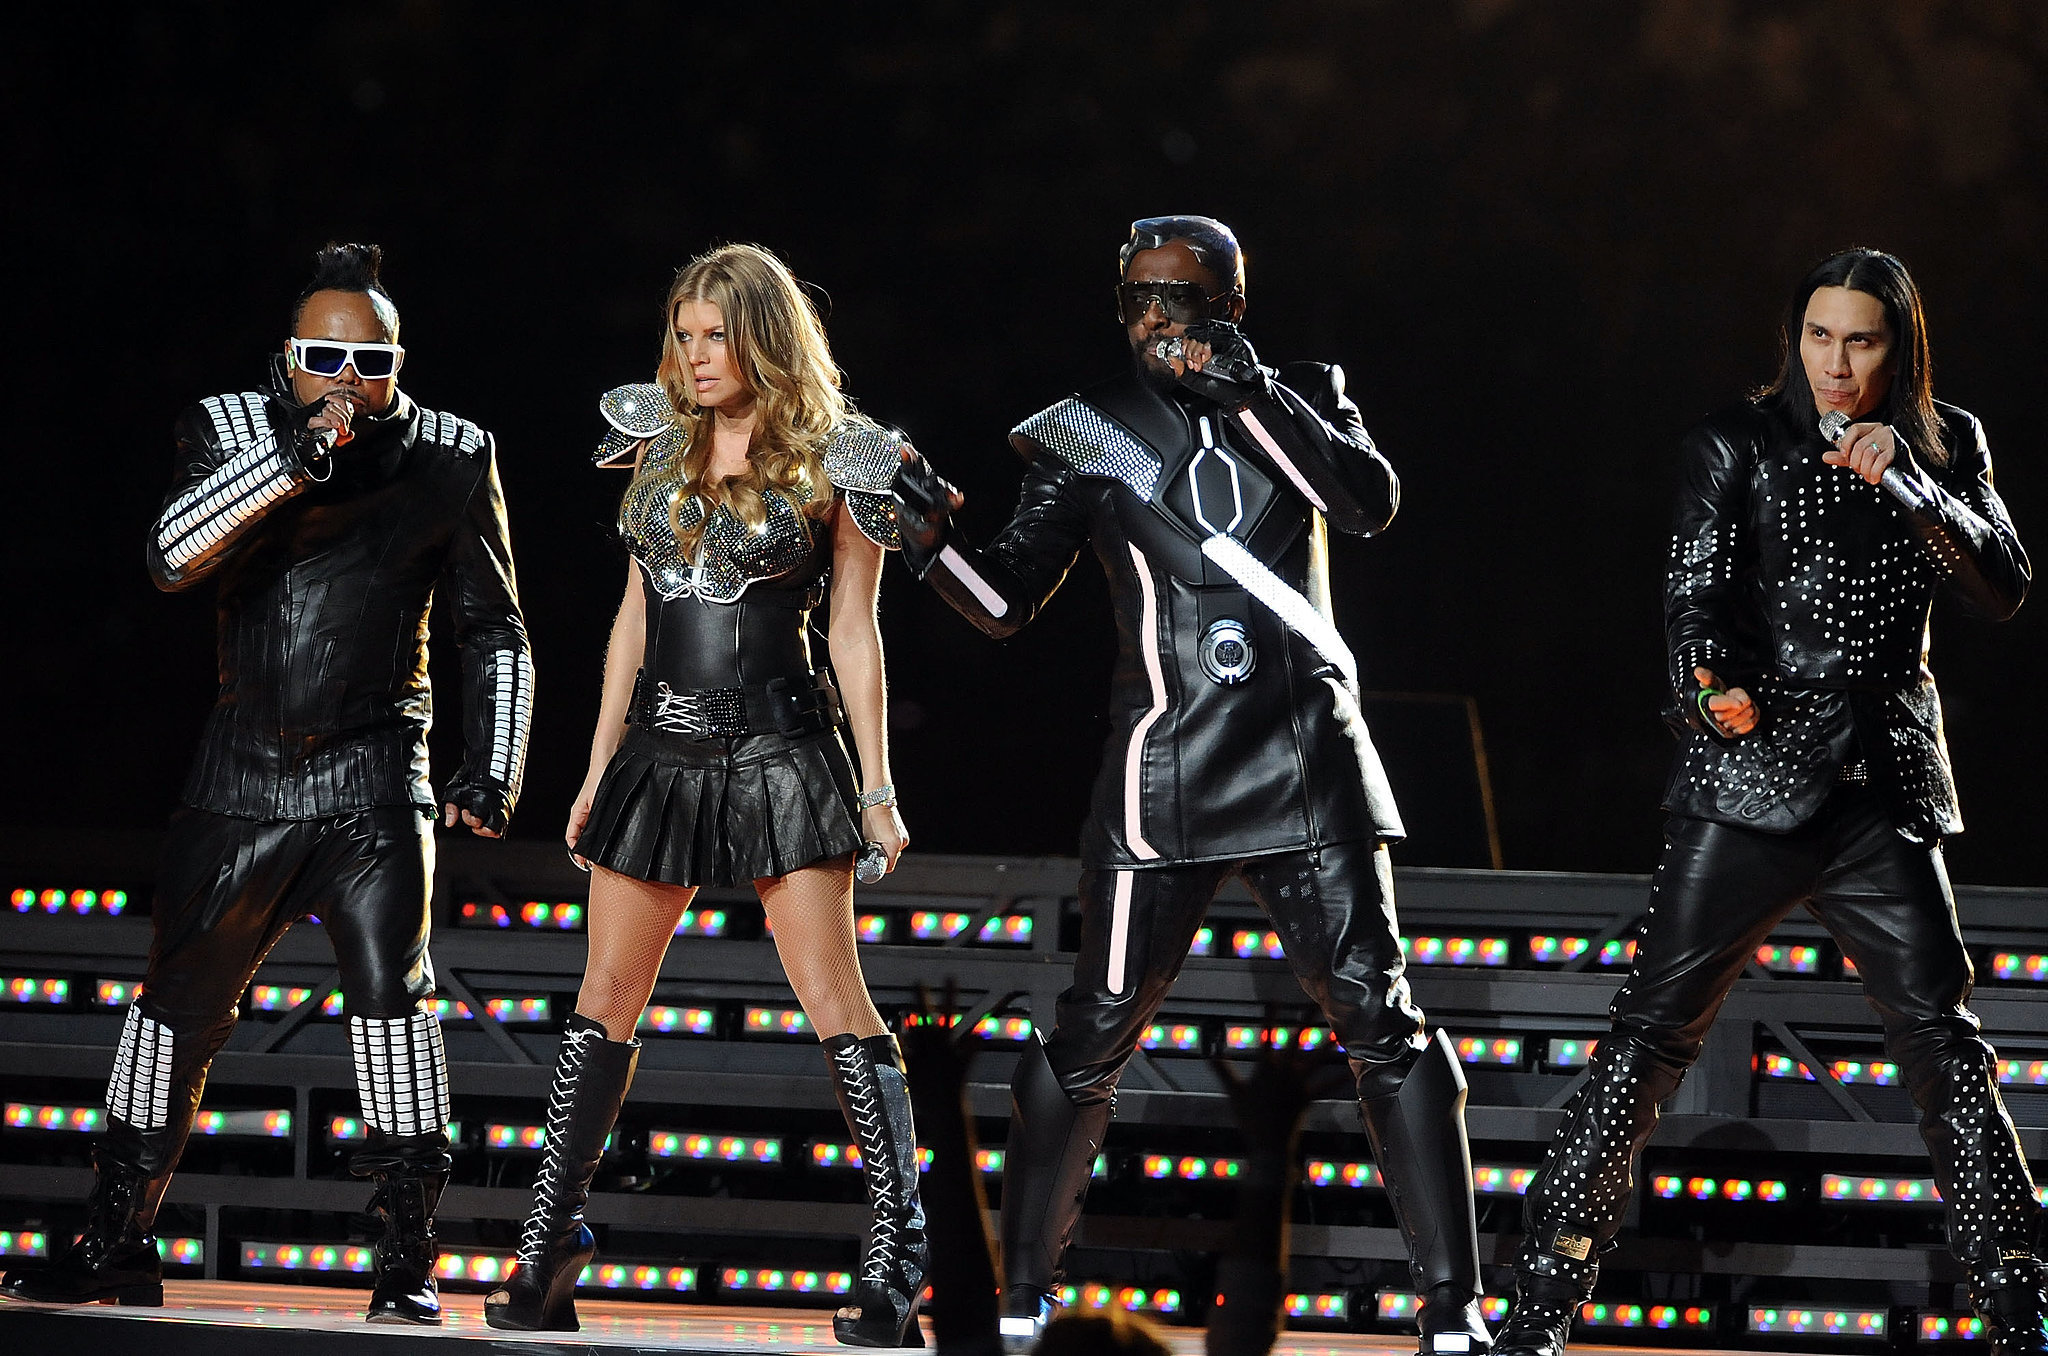 The Black Eyed Peas sported futuristic costumes while performing during the halftime show in 2011.